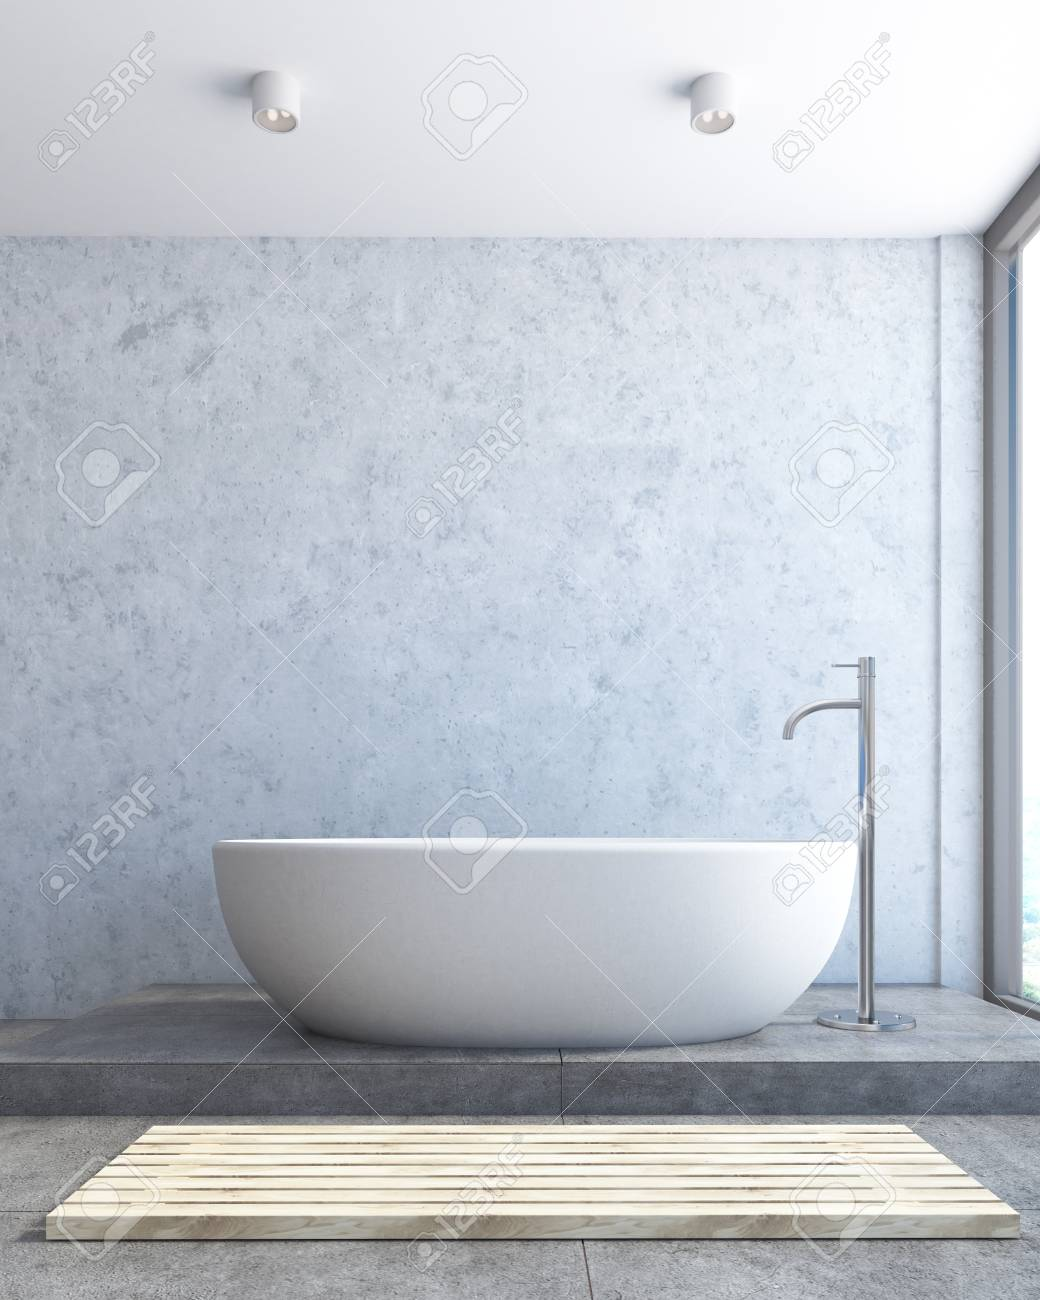 Close Up Of A White Bathtub Standing On A Concrete Floor Of A ...